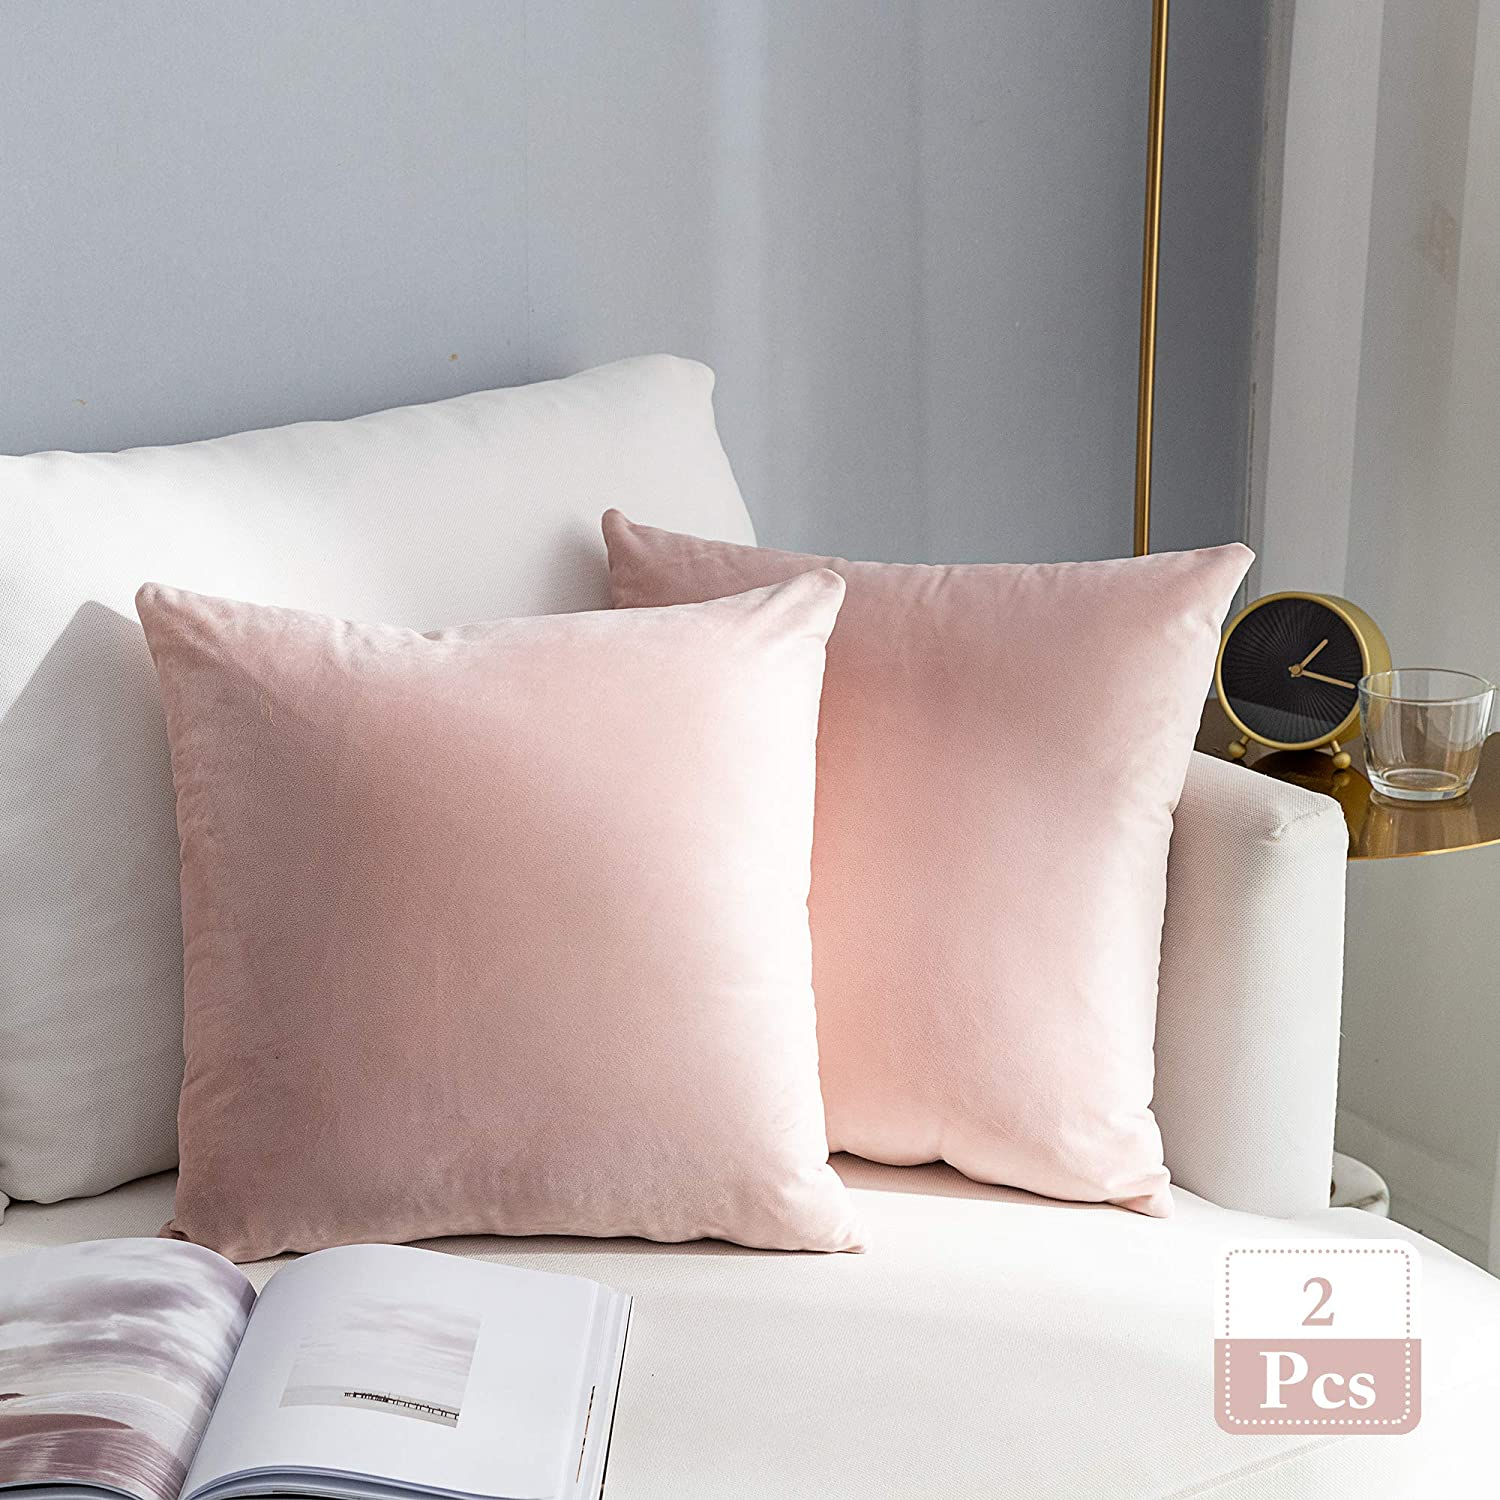 Shop Stellhome Super Soft Velvet Throw Pillow from Amazon on Openhaus